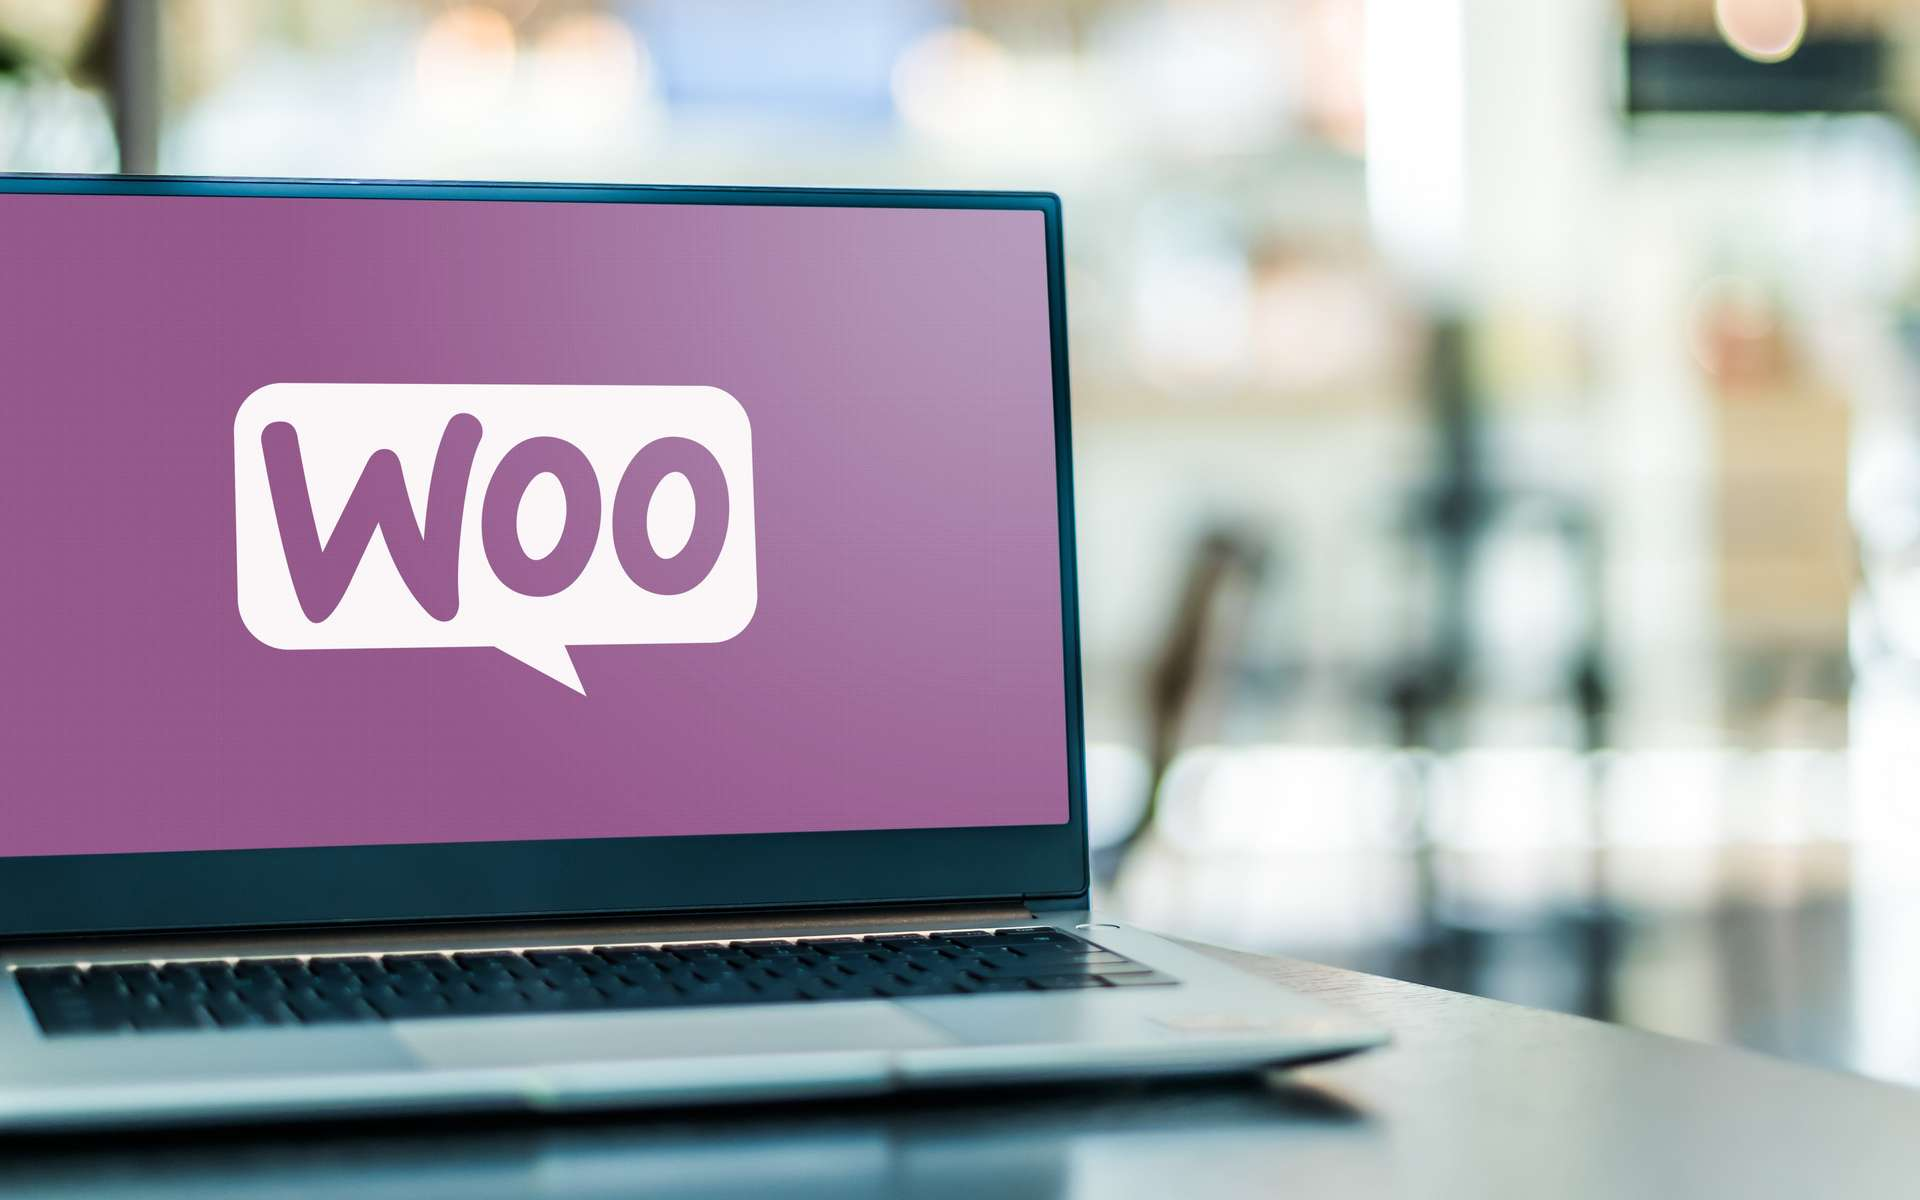 Formation Woocommerce sur Udemy © monticellllo, Adobe Stock